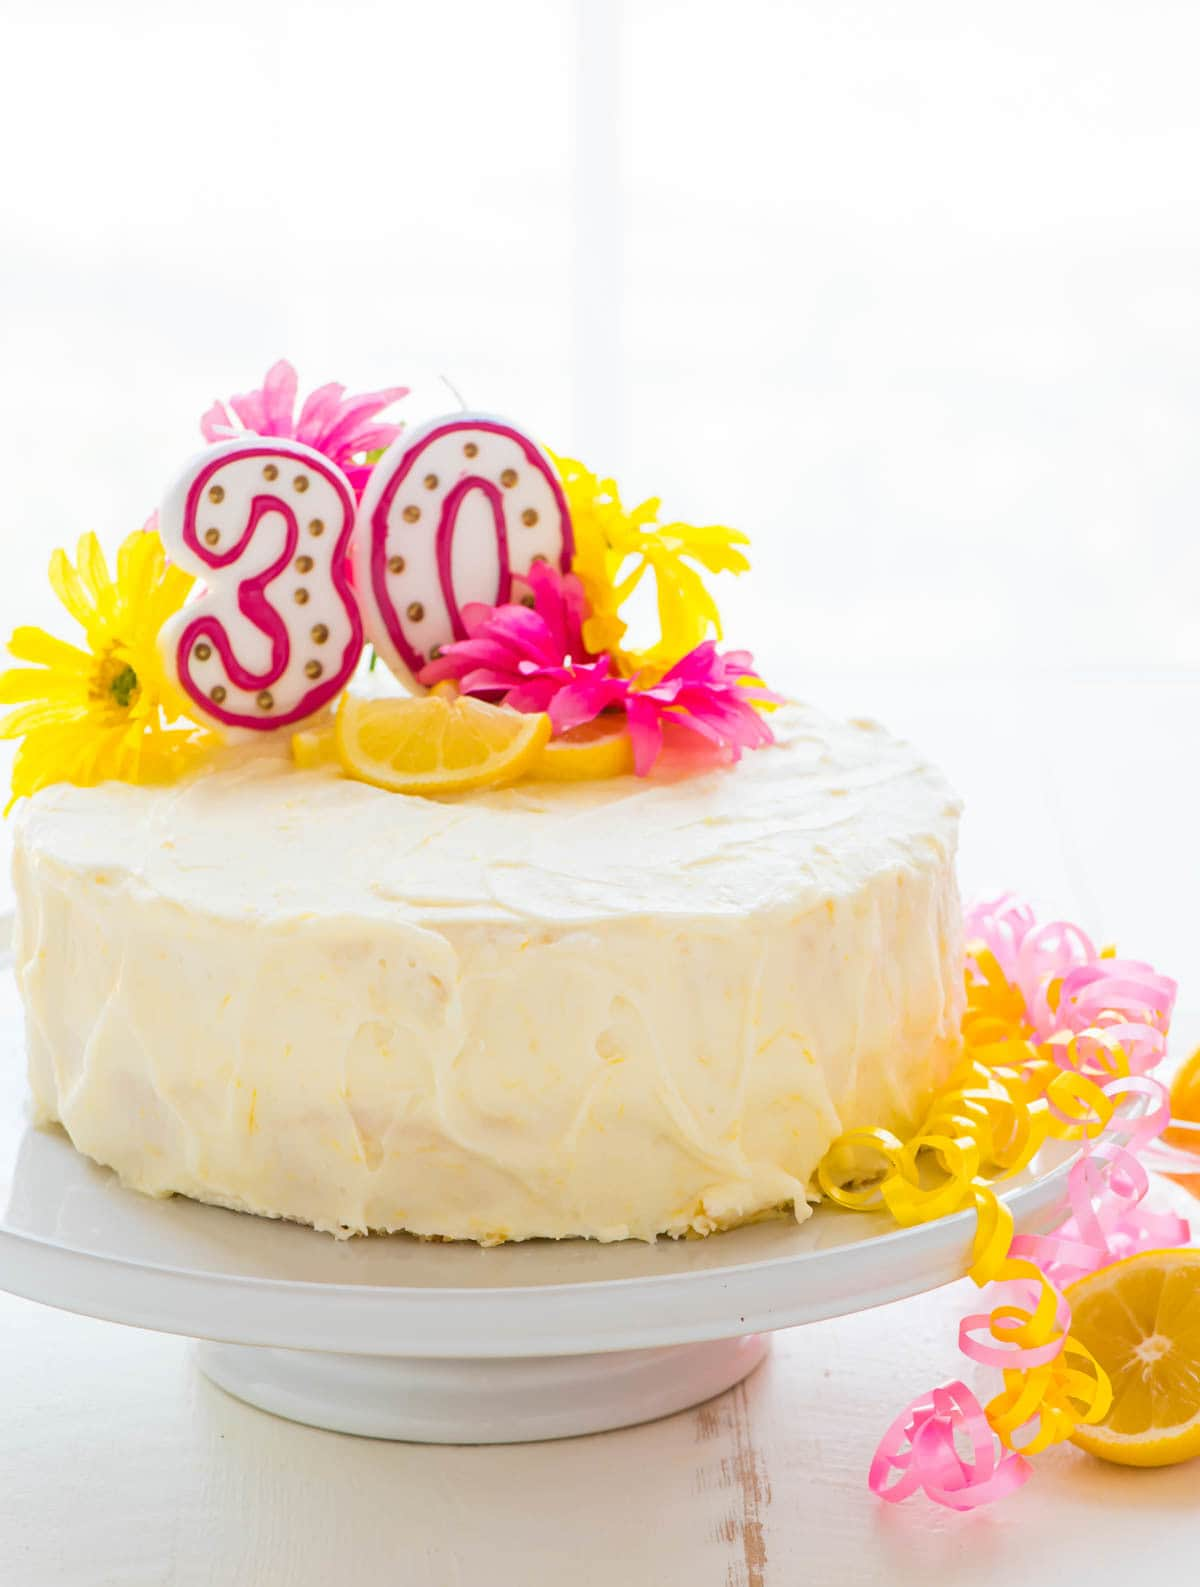 Lemon Layer Cake Frosted With Cream Cheese Frosting Topped Fresh Yellow Flowers And